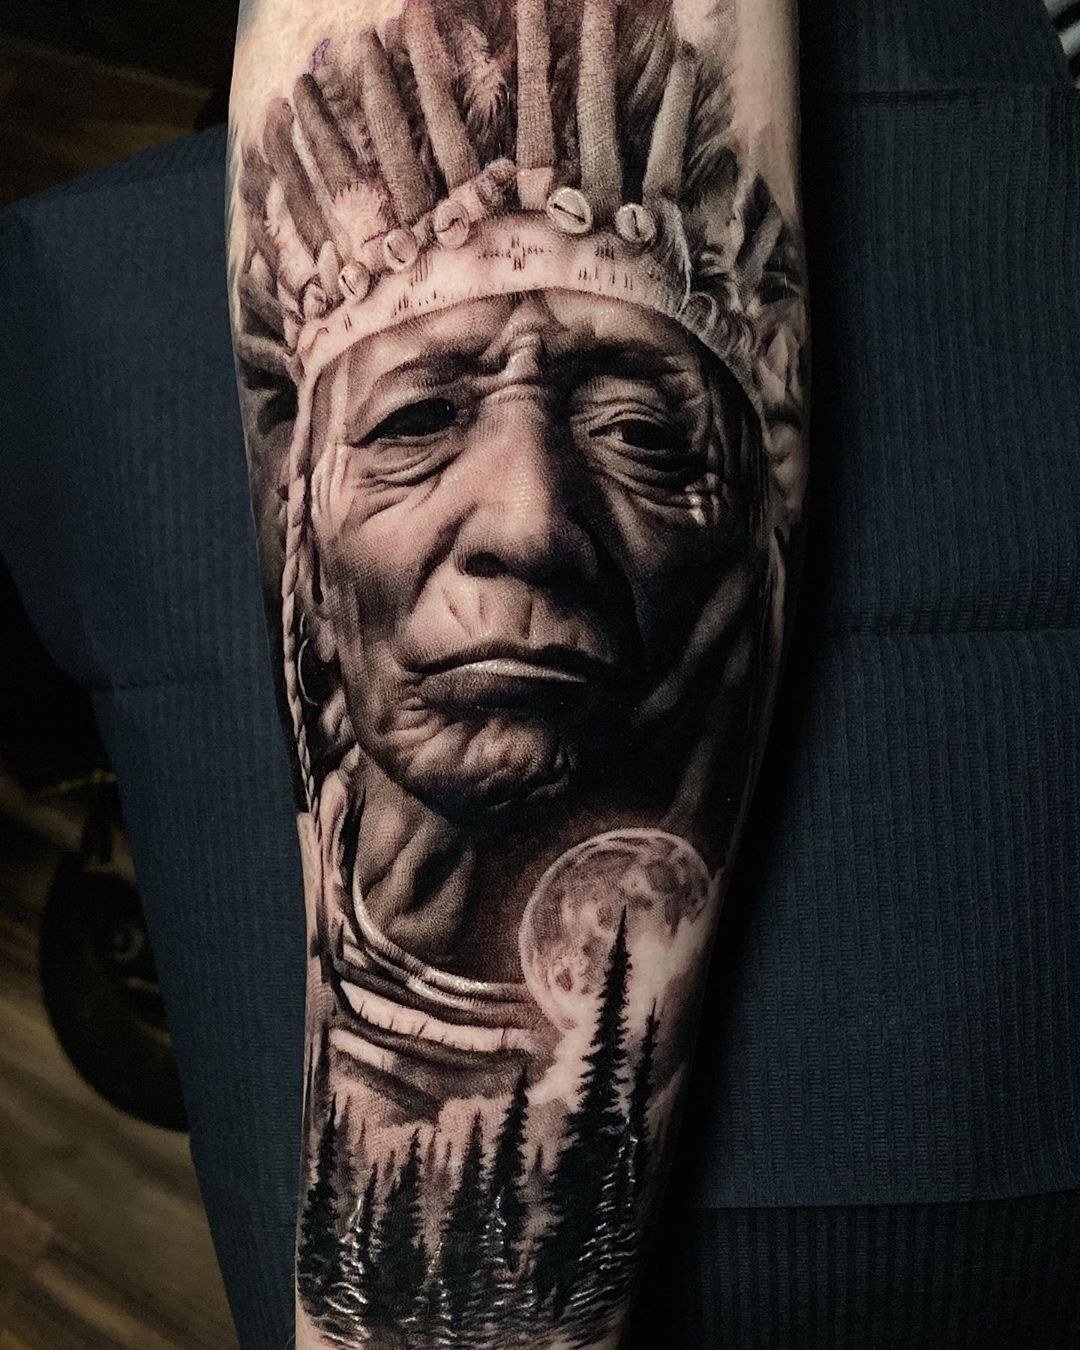 Indian Chief Artist Ashhighamtattoo Country Uk Follow Skingiants For In 2020 Chest Tattoo Men Tattoos Black And Grey Tattoos